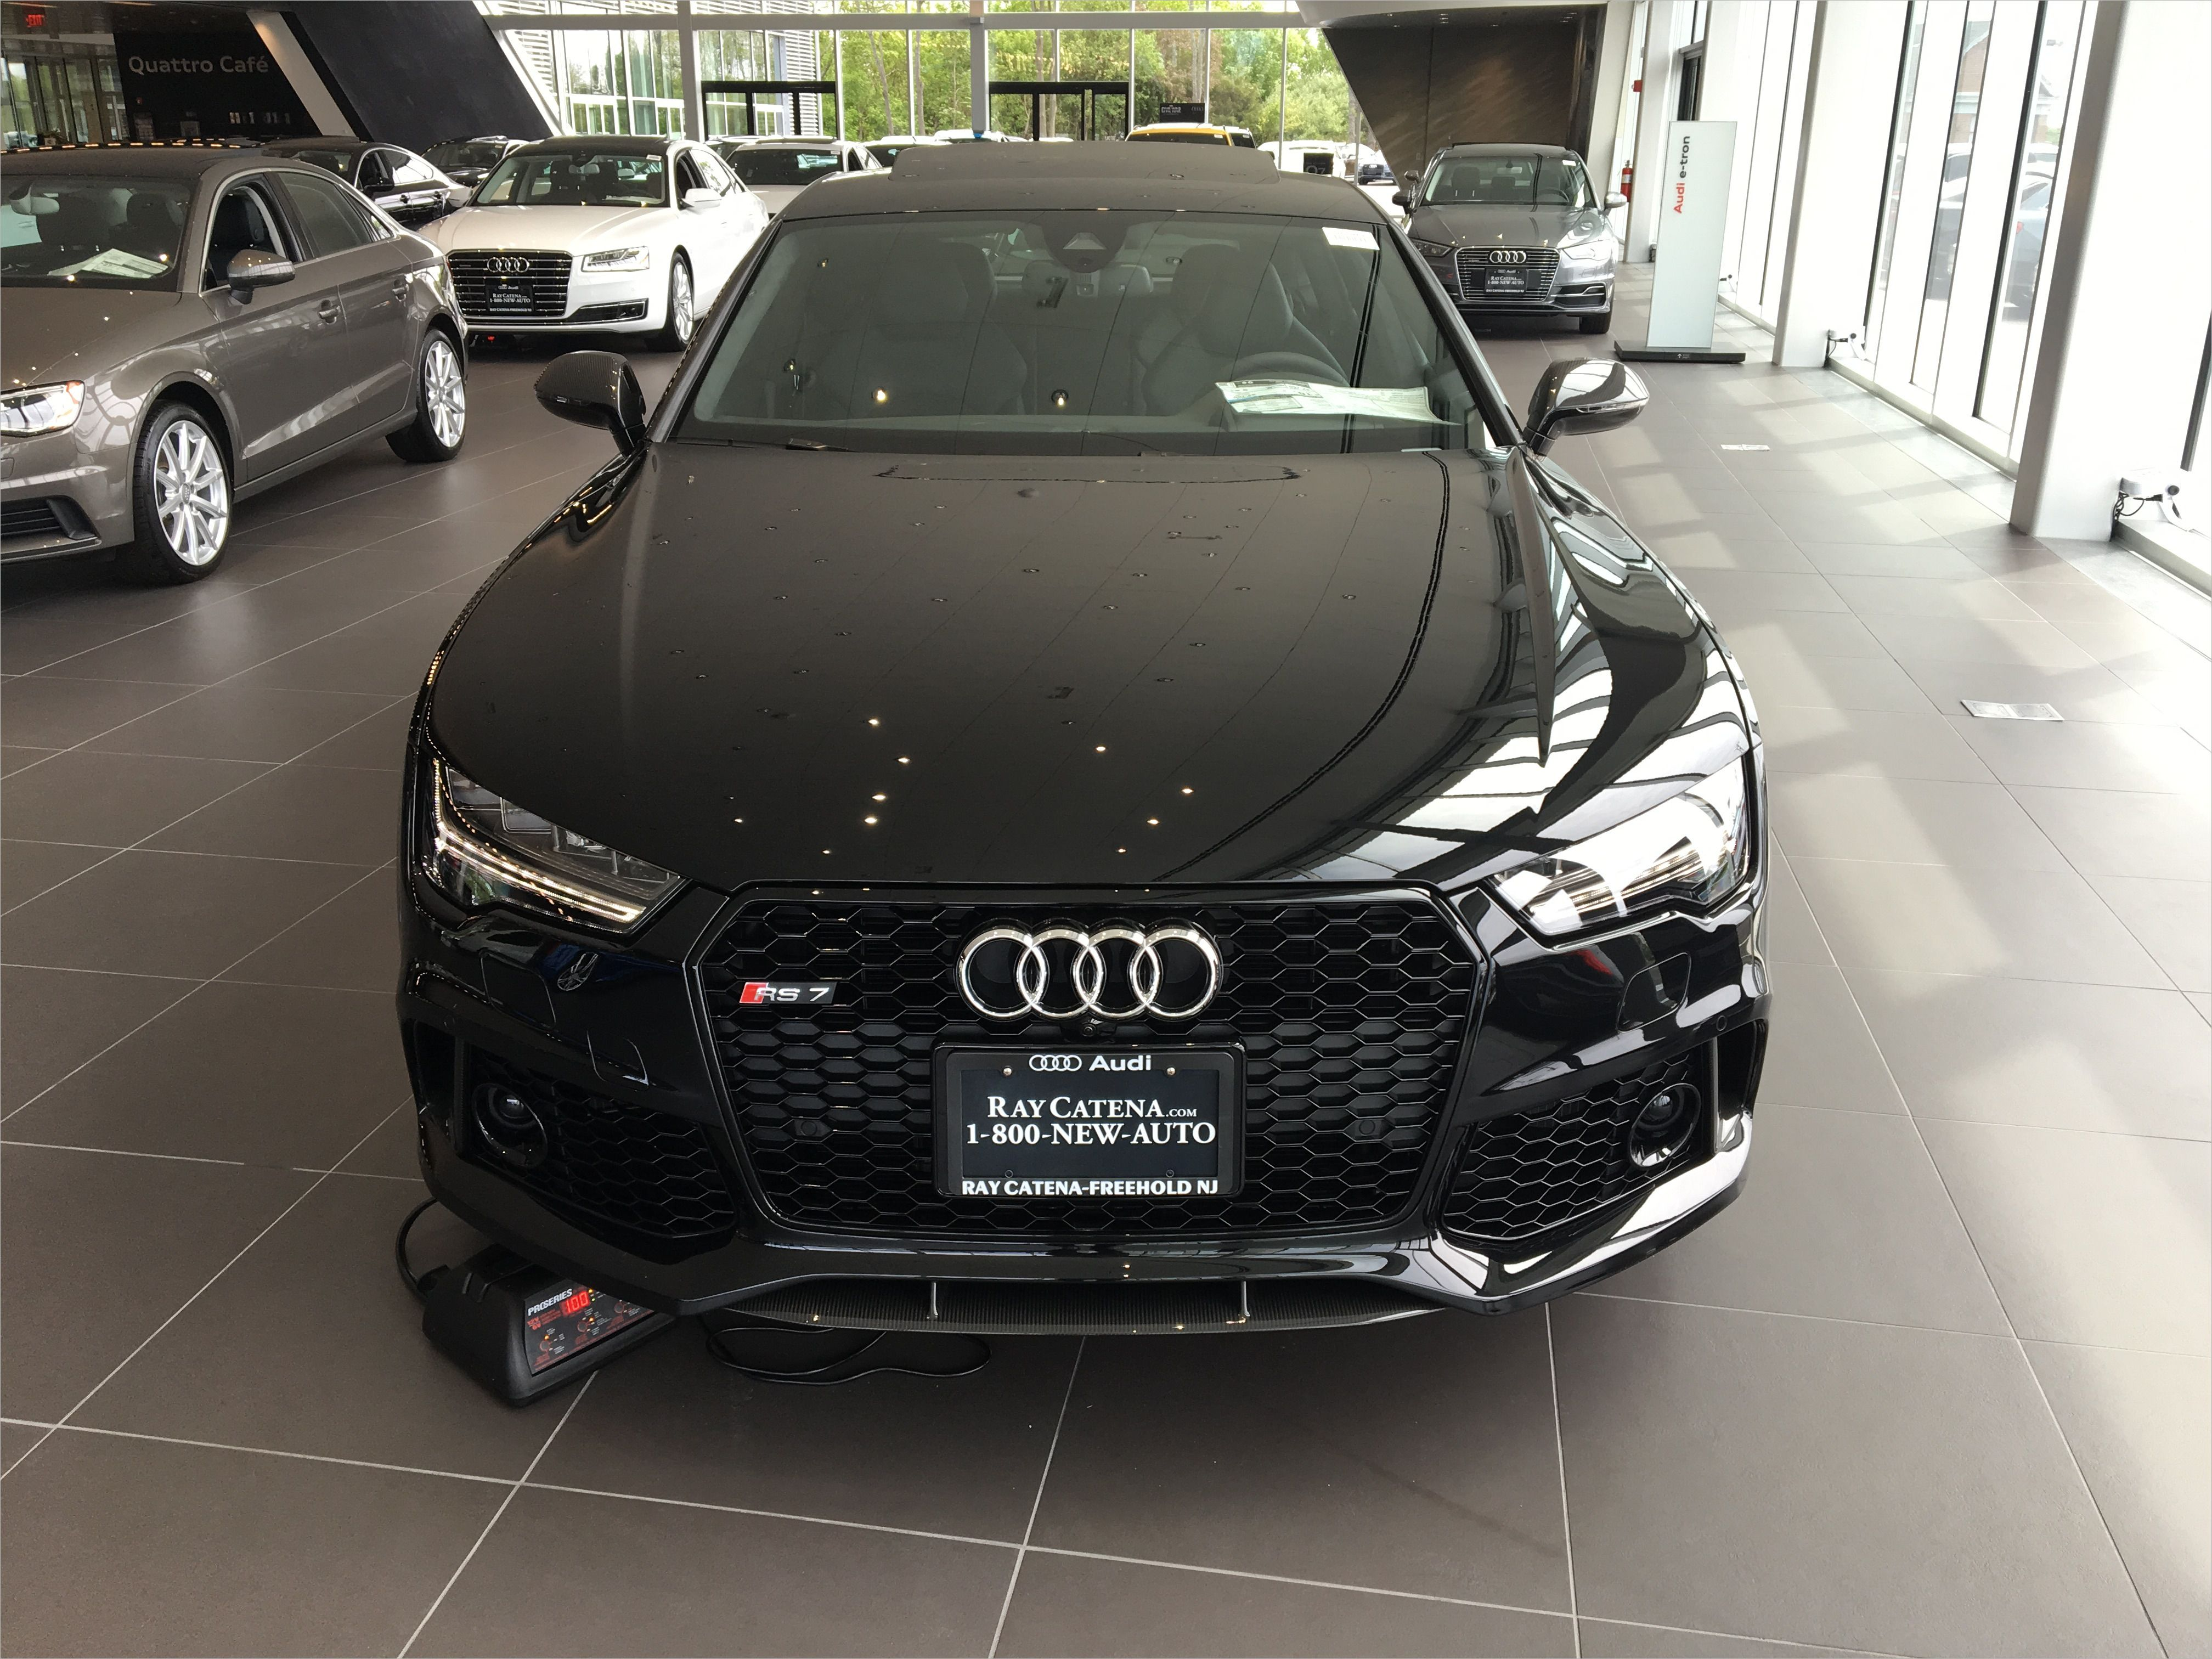 Cheap Cars for Sale Near Me Under 3000 New Luxury Cars for Sale Near Me for 3000 Pleasant for You to the